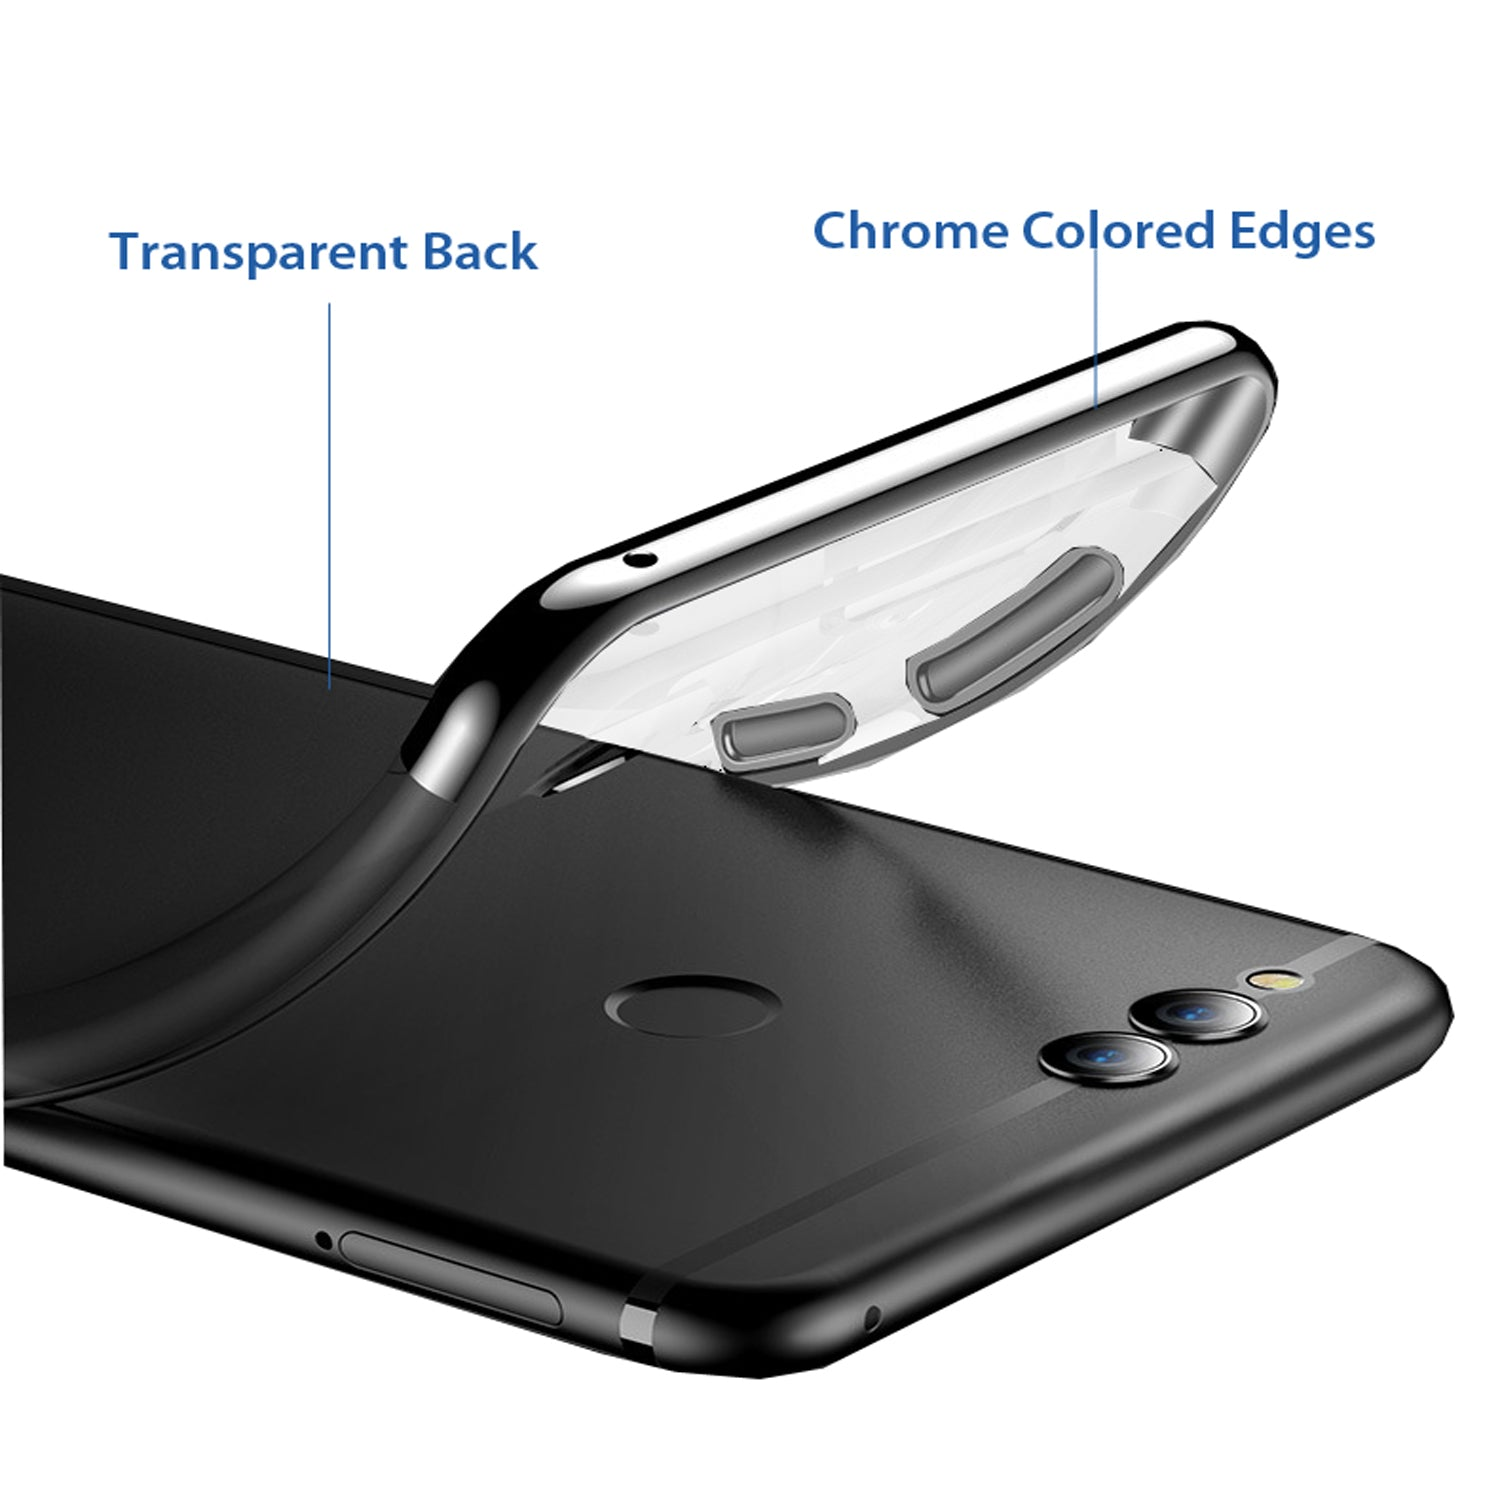 Chrome Plated Transparent Flexible Protective Case Cover for Huawei Honor 7X - Black - Mobizang